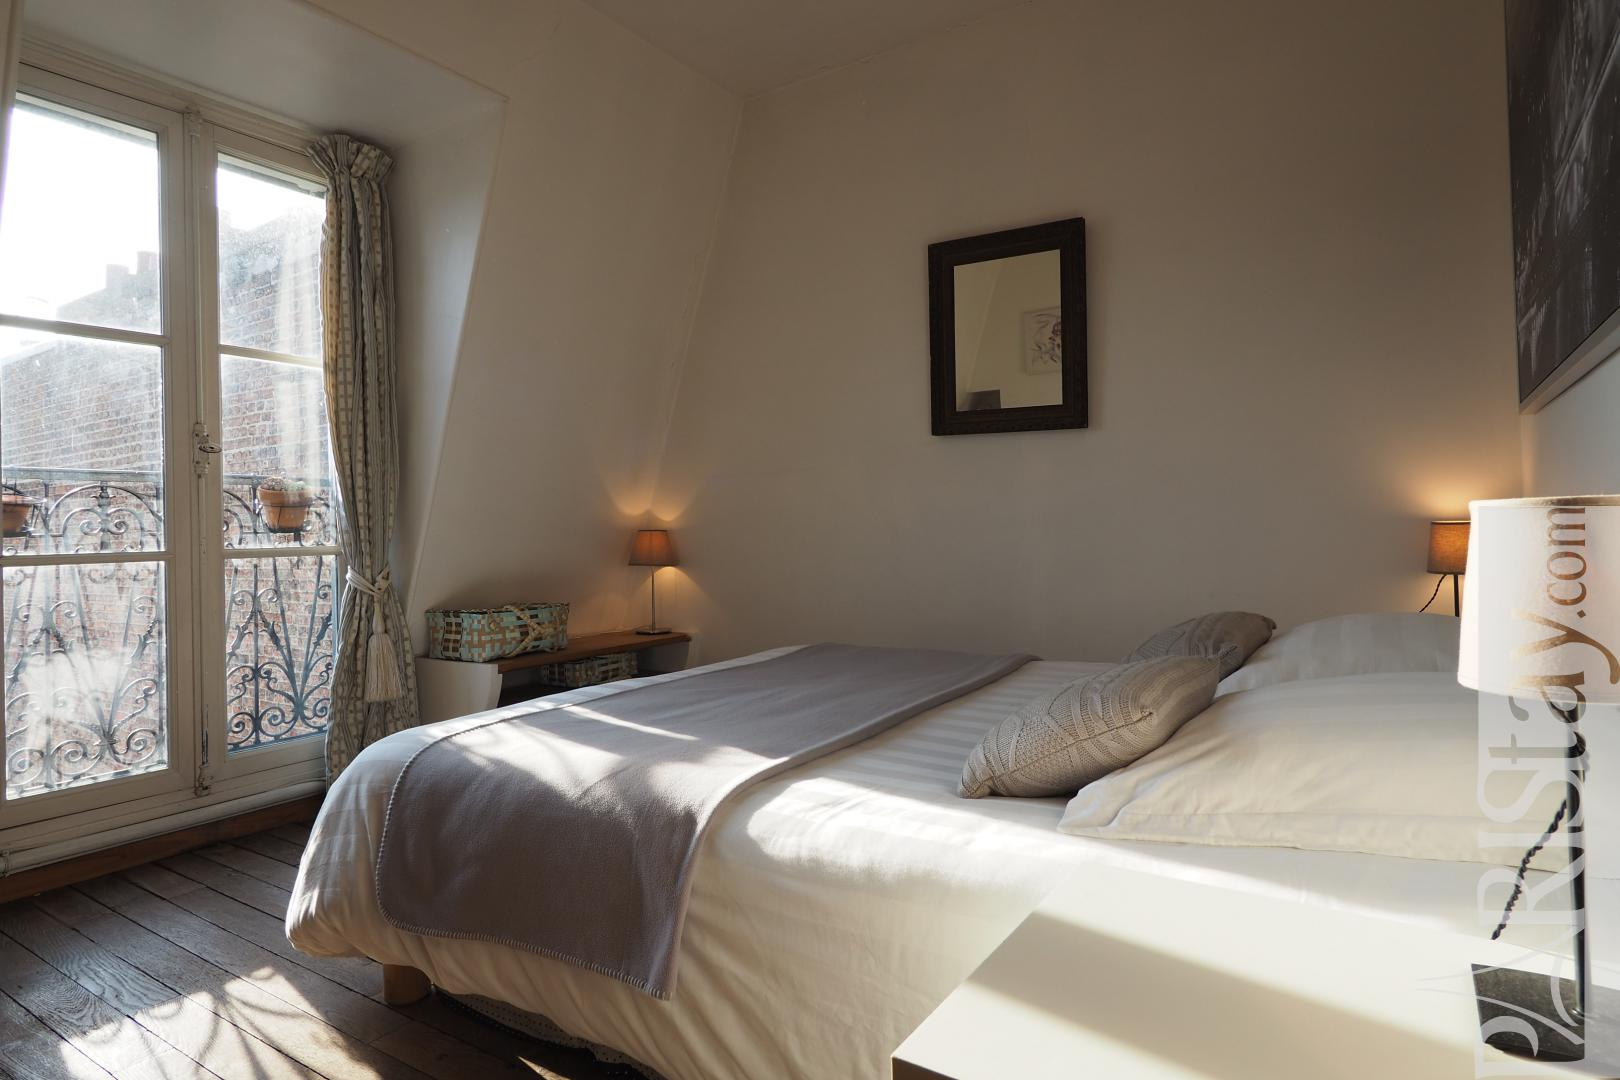 Location appartement paris montmartre appartement t2 meubl - Chambre a coucher paris ...